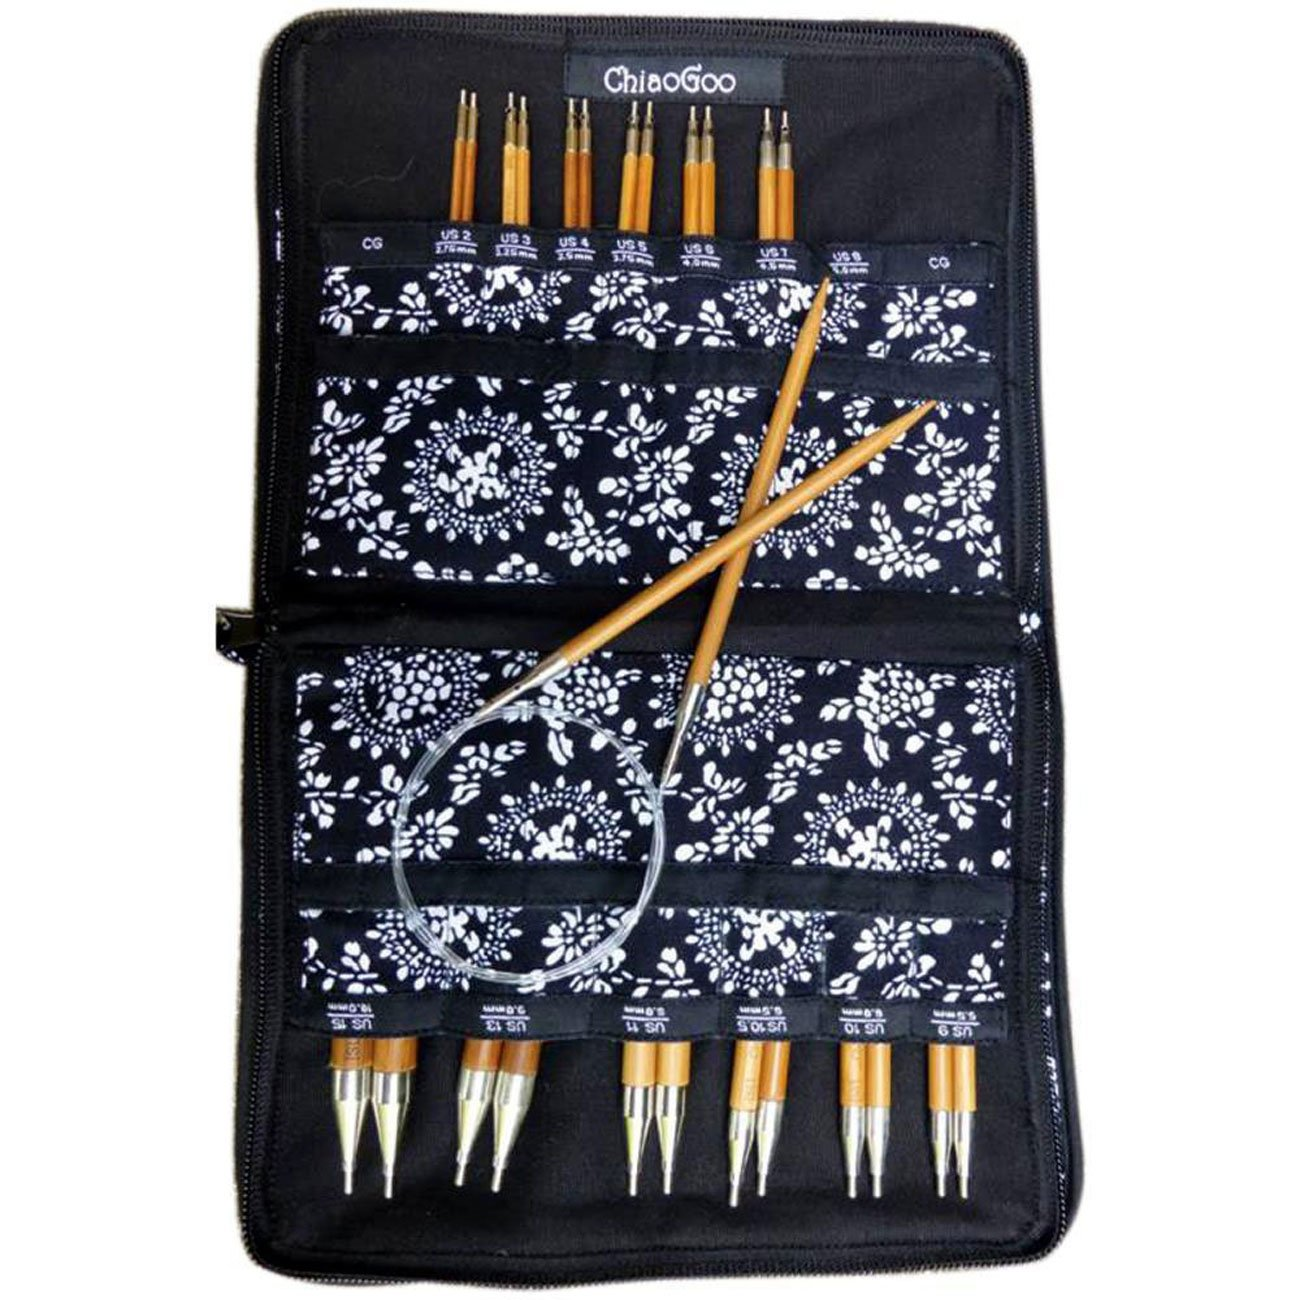 ChiaoGoo Spin Interchangeable Knitting Needle Set Complete: Size US 2 (2.75mm)-Size US 15 (10mm) Bundle with 1 Artsiga Crafts Project Bag 2500-C by ChiaoGoo Knitting Needles (Image #2)